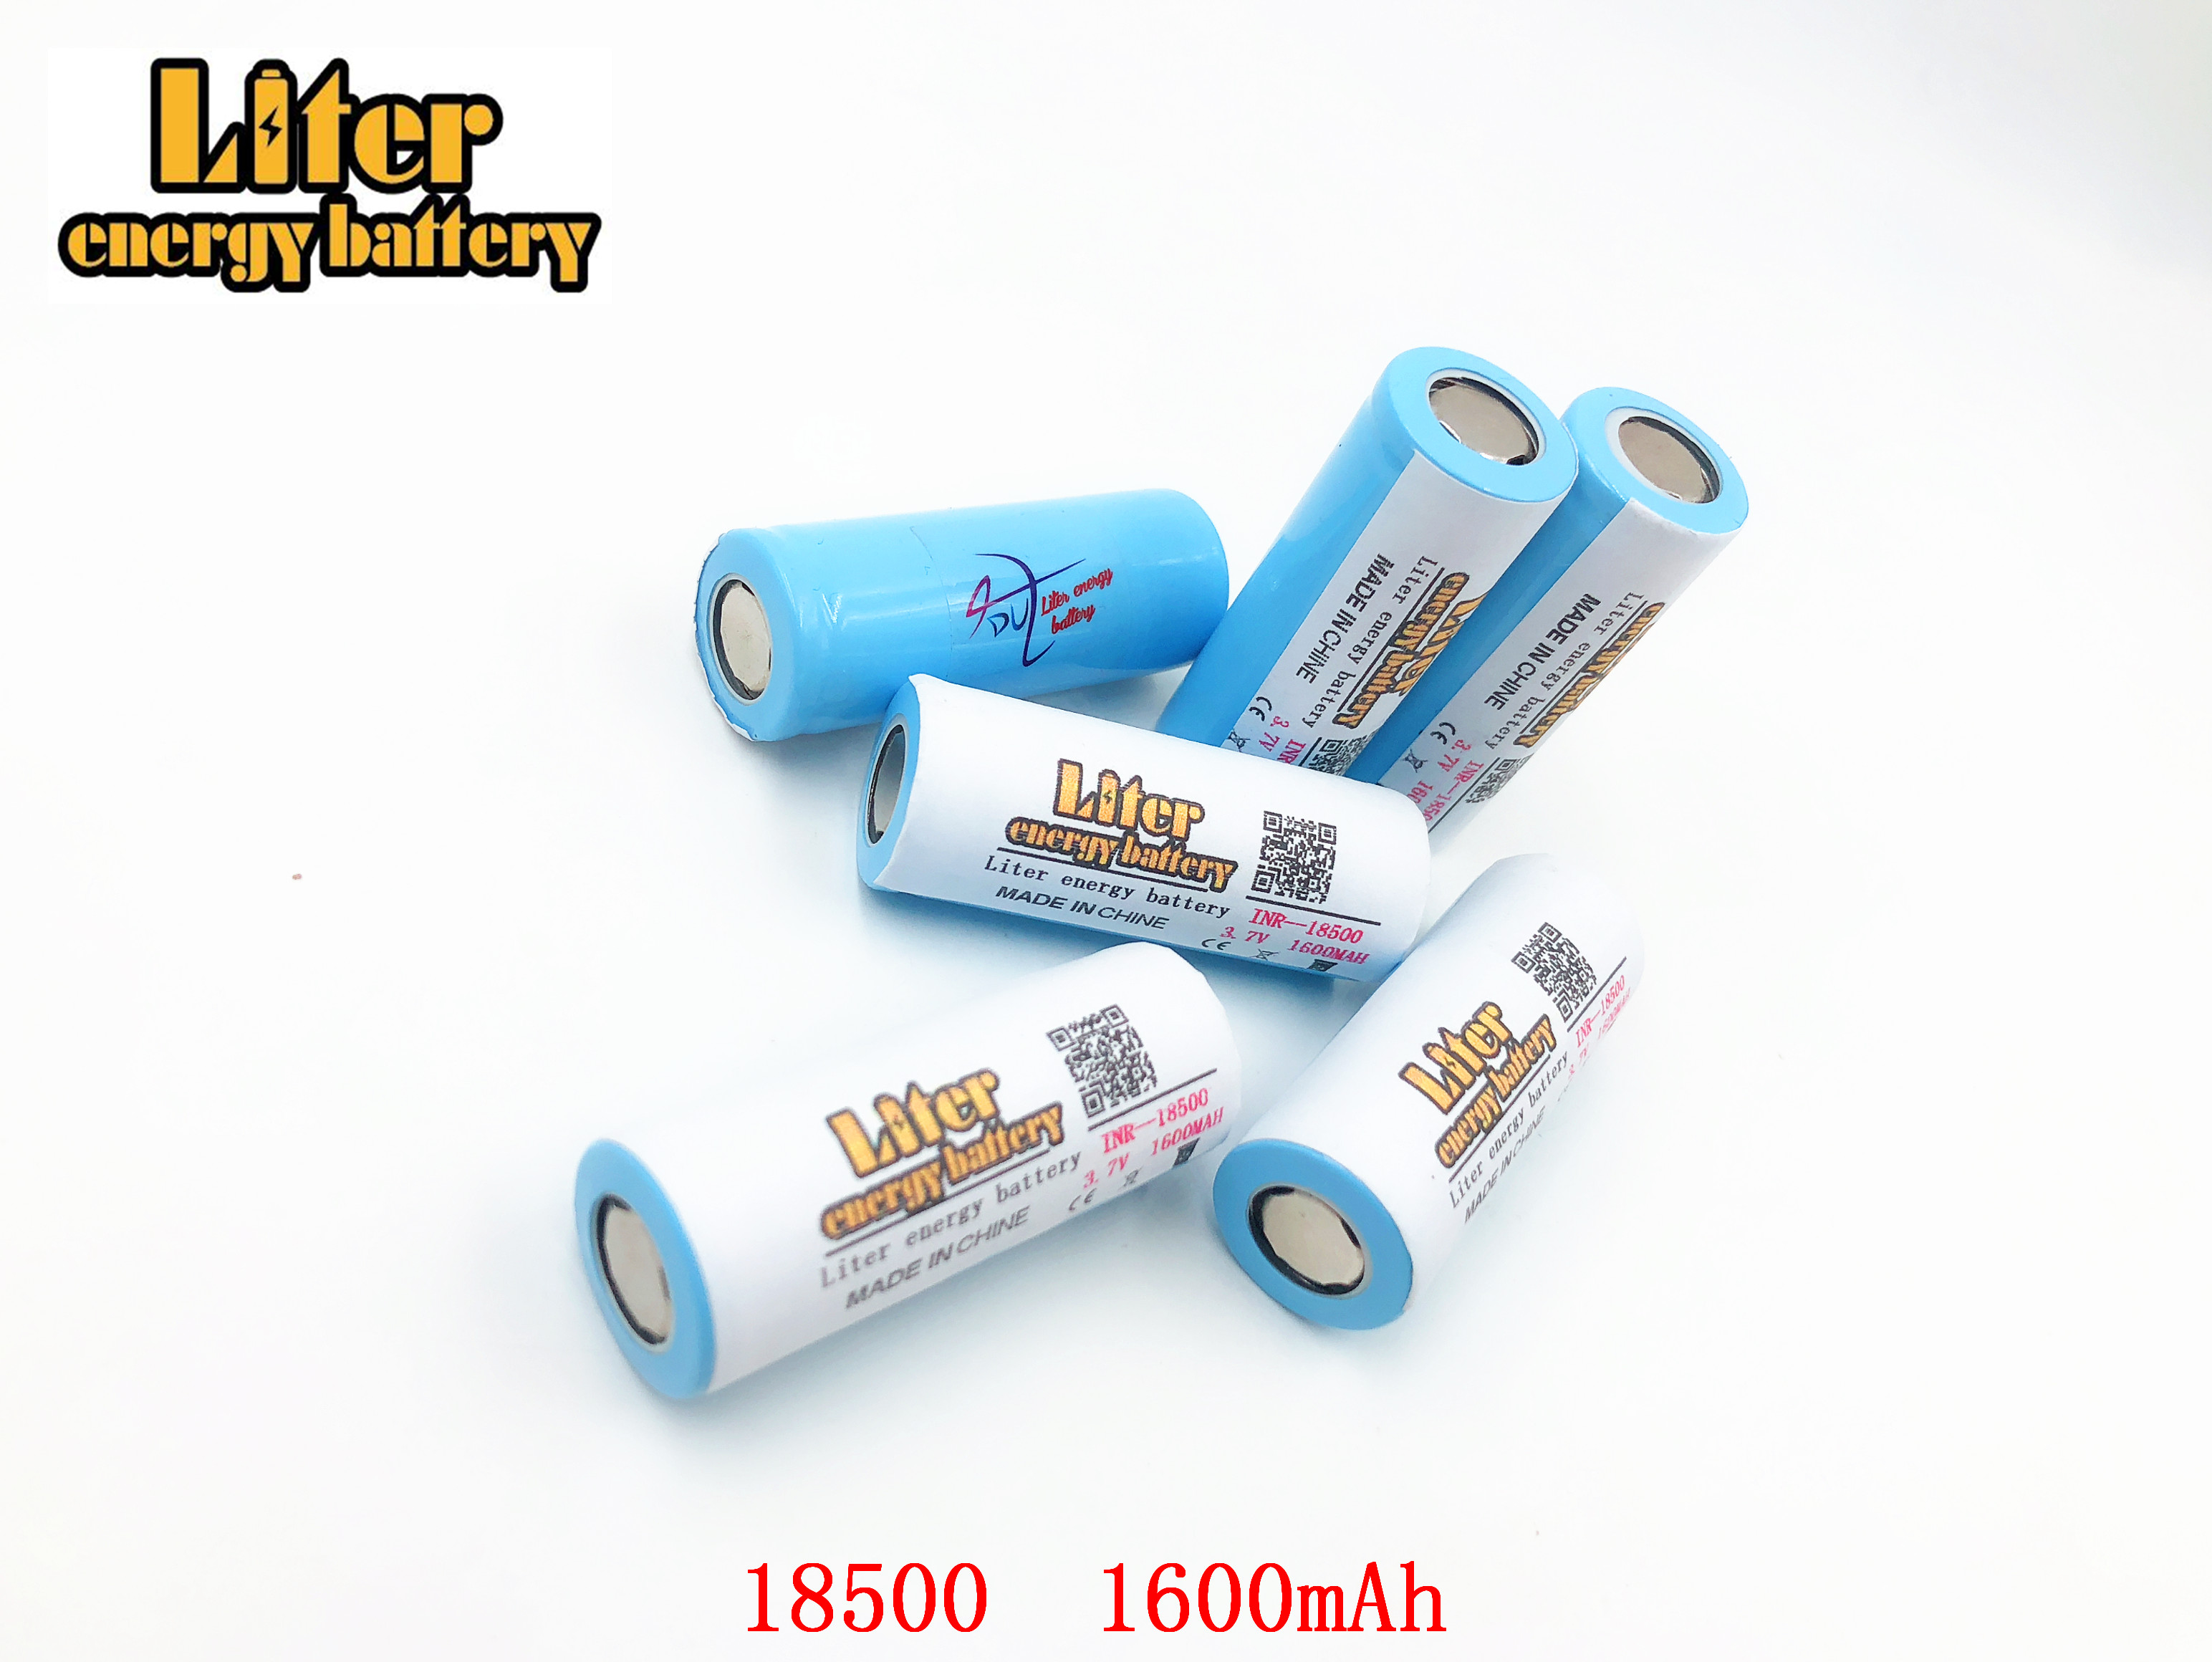 Original Liter energy <font><b>battery</b></font> ICR <font><b>18500</b></font> <font><b>Battery</b></font> <font><b>3.7V</b></font> 1600mAh <font><b>li</b></font>-<font><b>ion</b></font> Rechargeable <font><b>Battery</b></font> protective storage box image